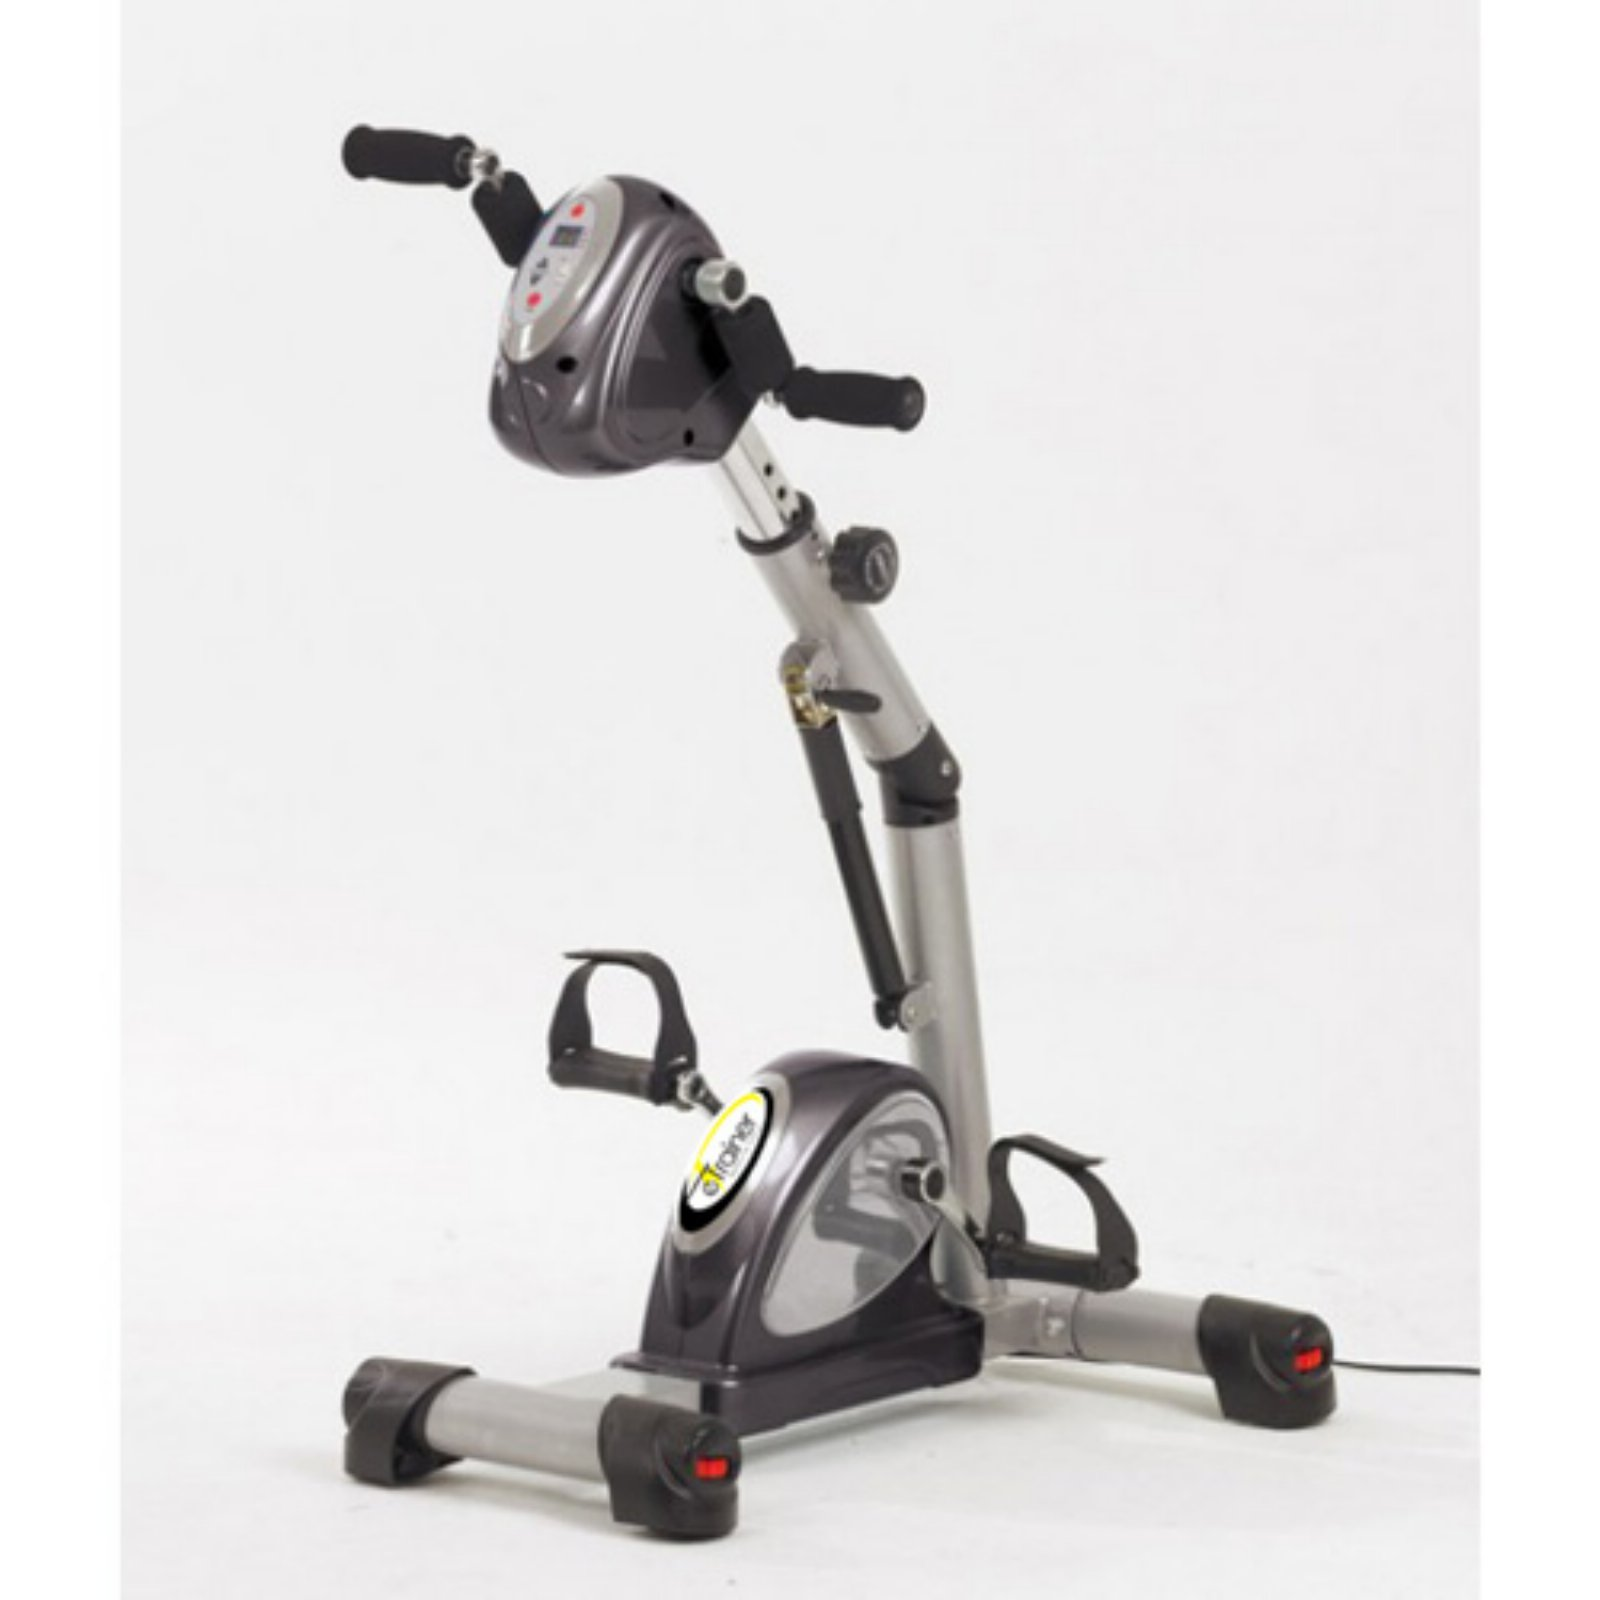 HCI Fitness E-Trainer Upper and Lower Body Pedal Exerciser